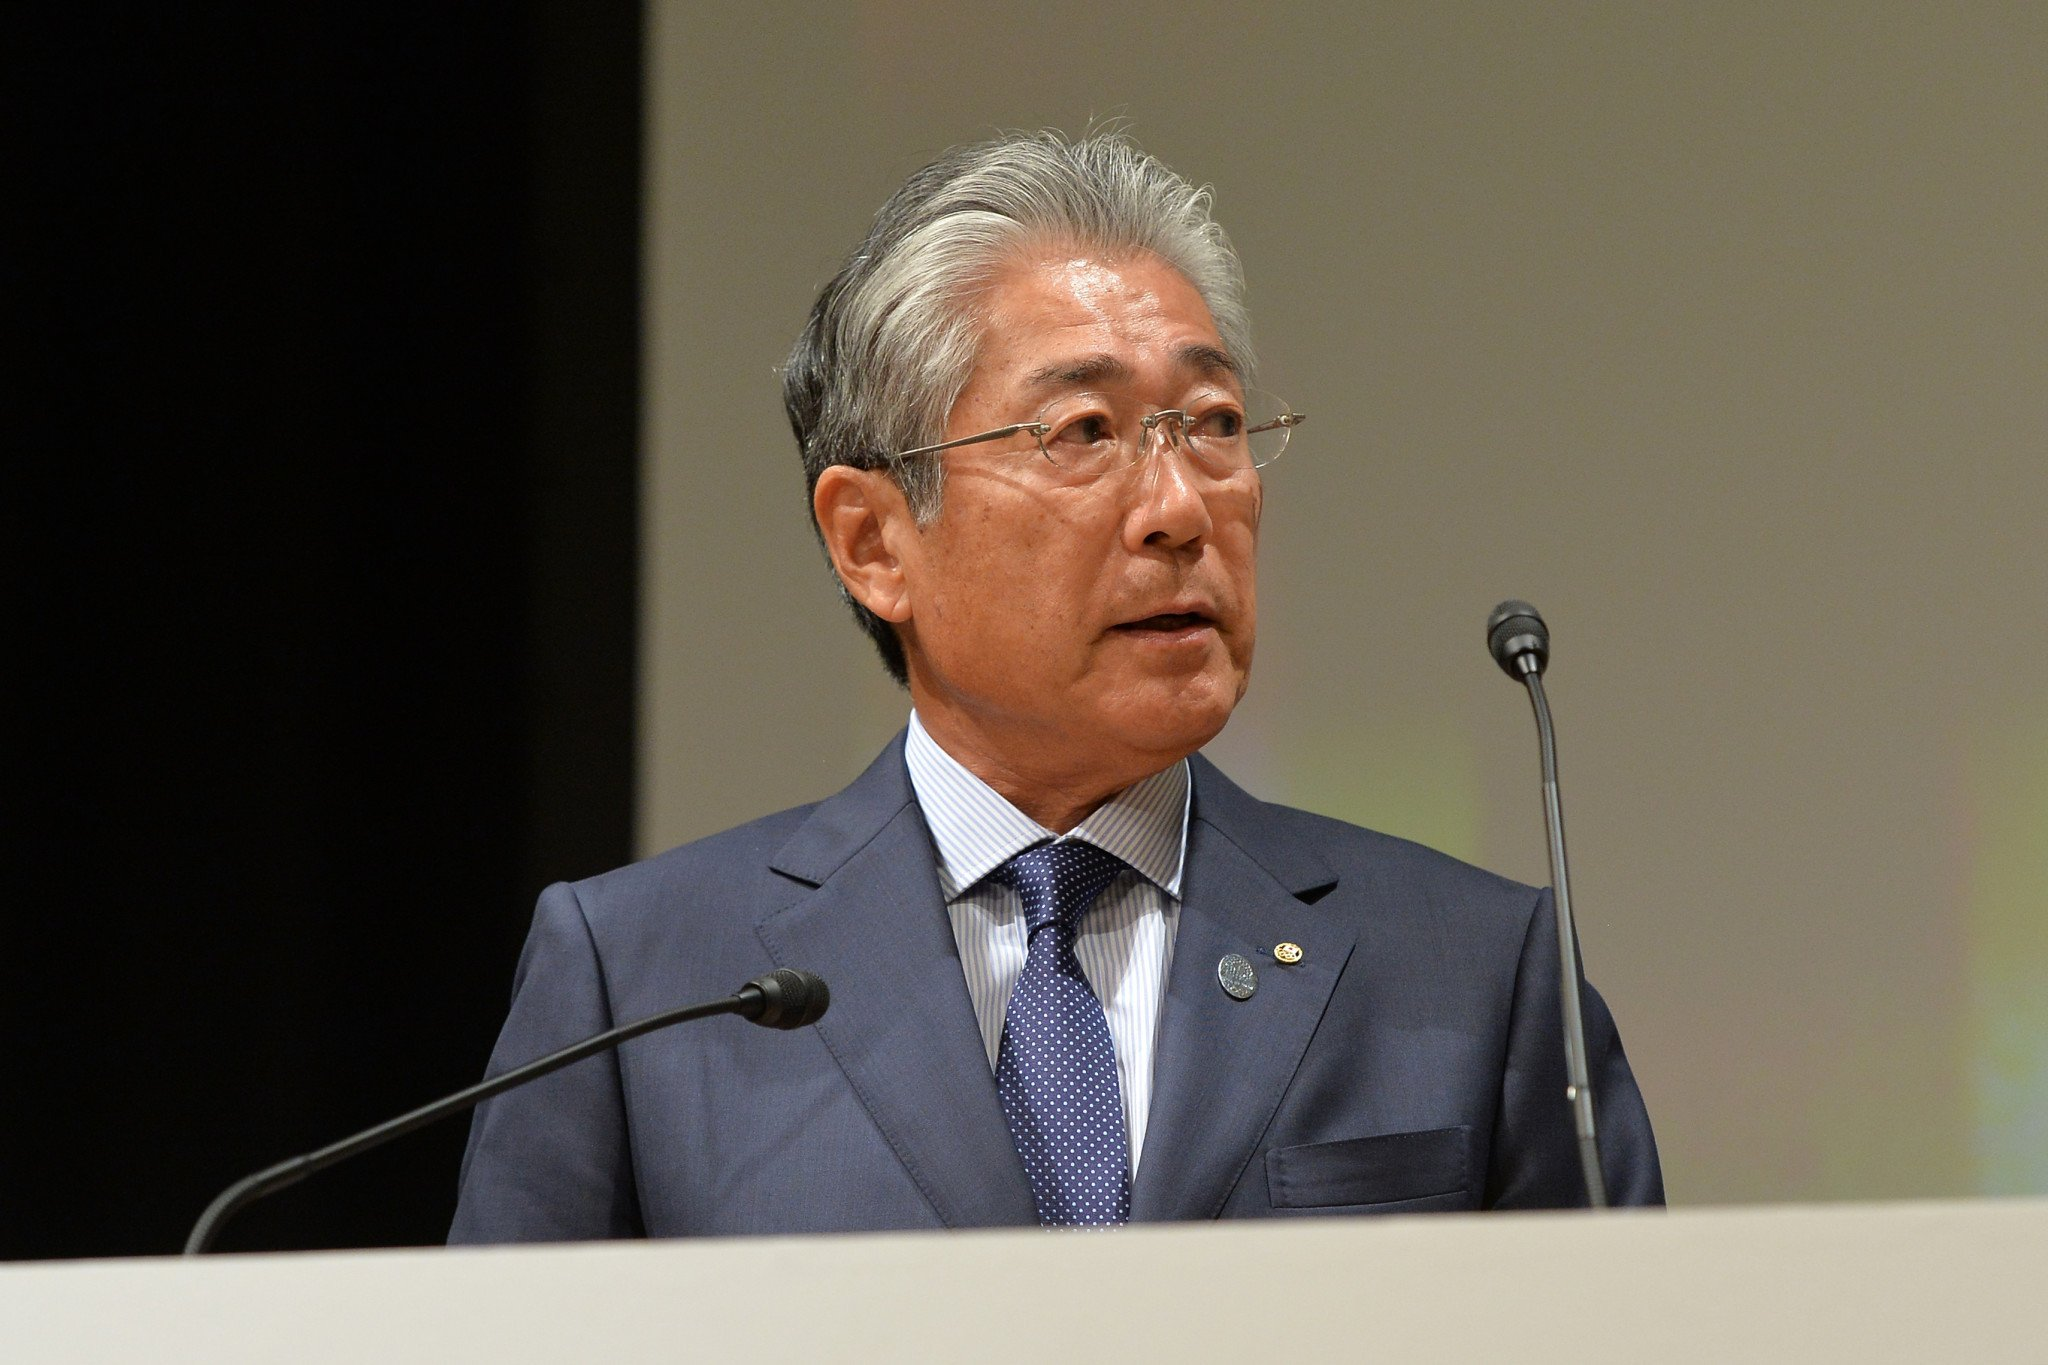 Japanese Olympic Committee set to extend age-limit so Takeda can stay as President for Tokyo 2020